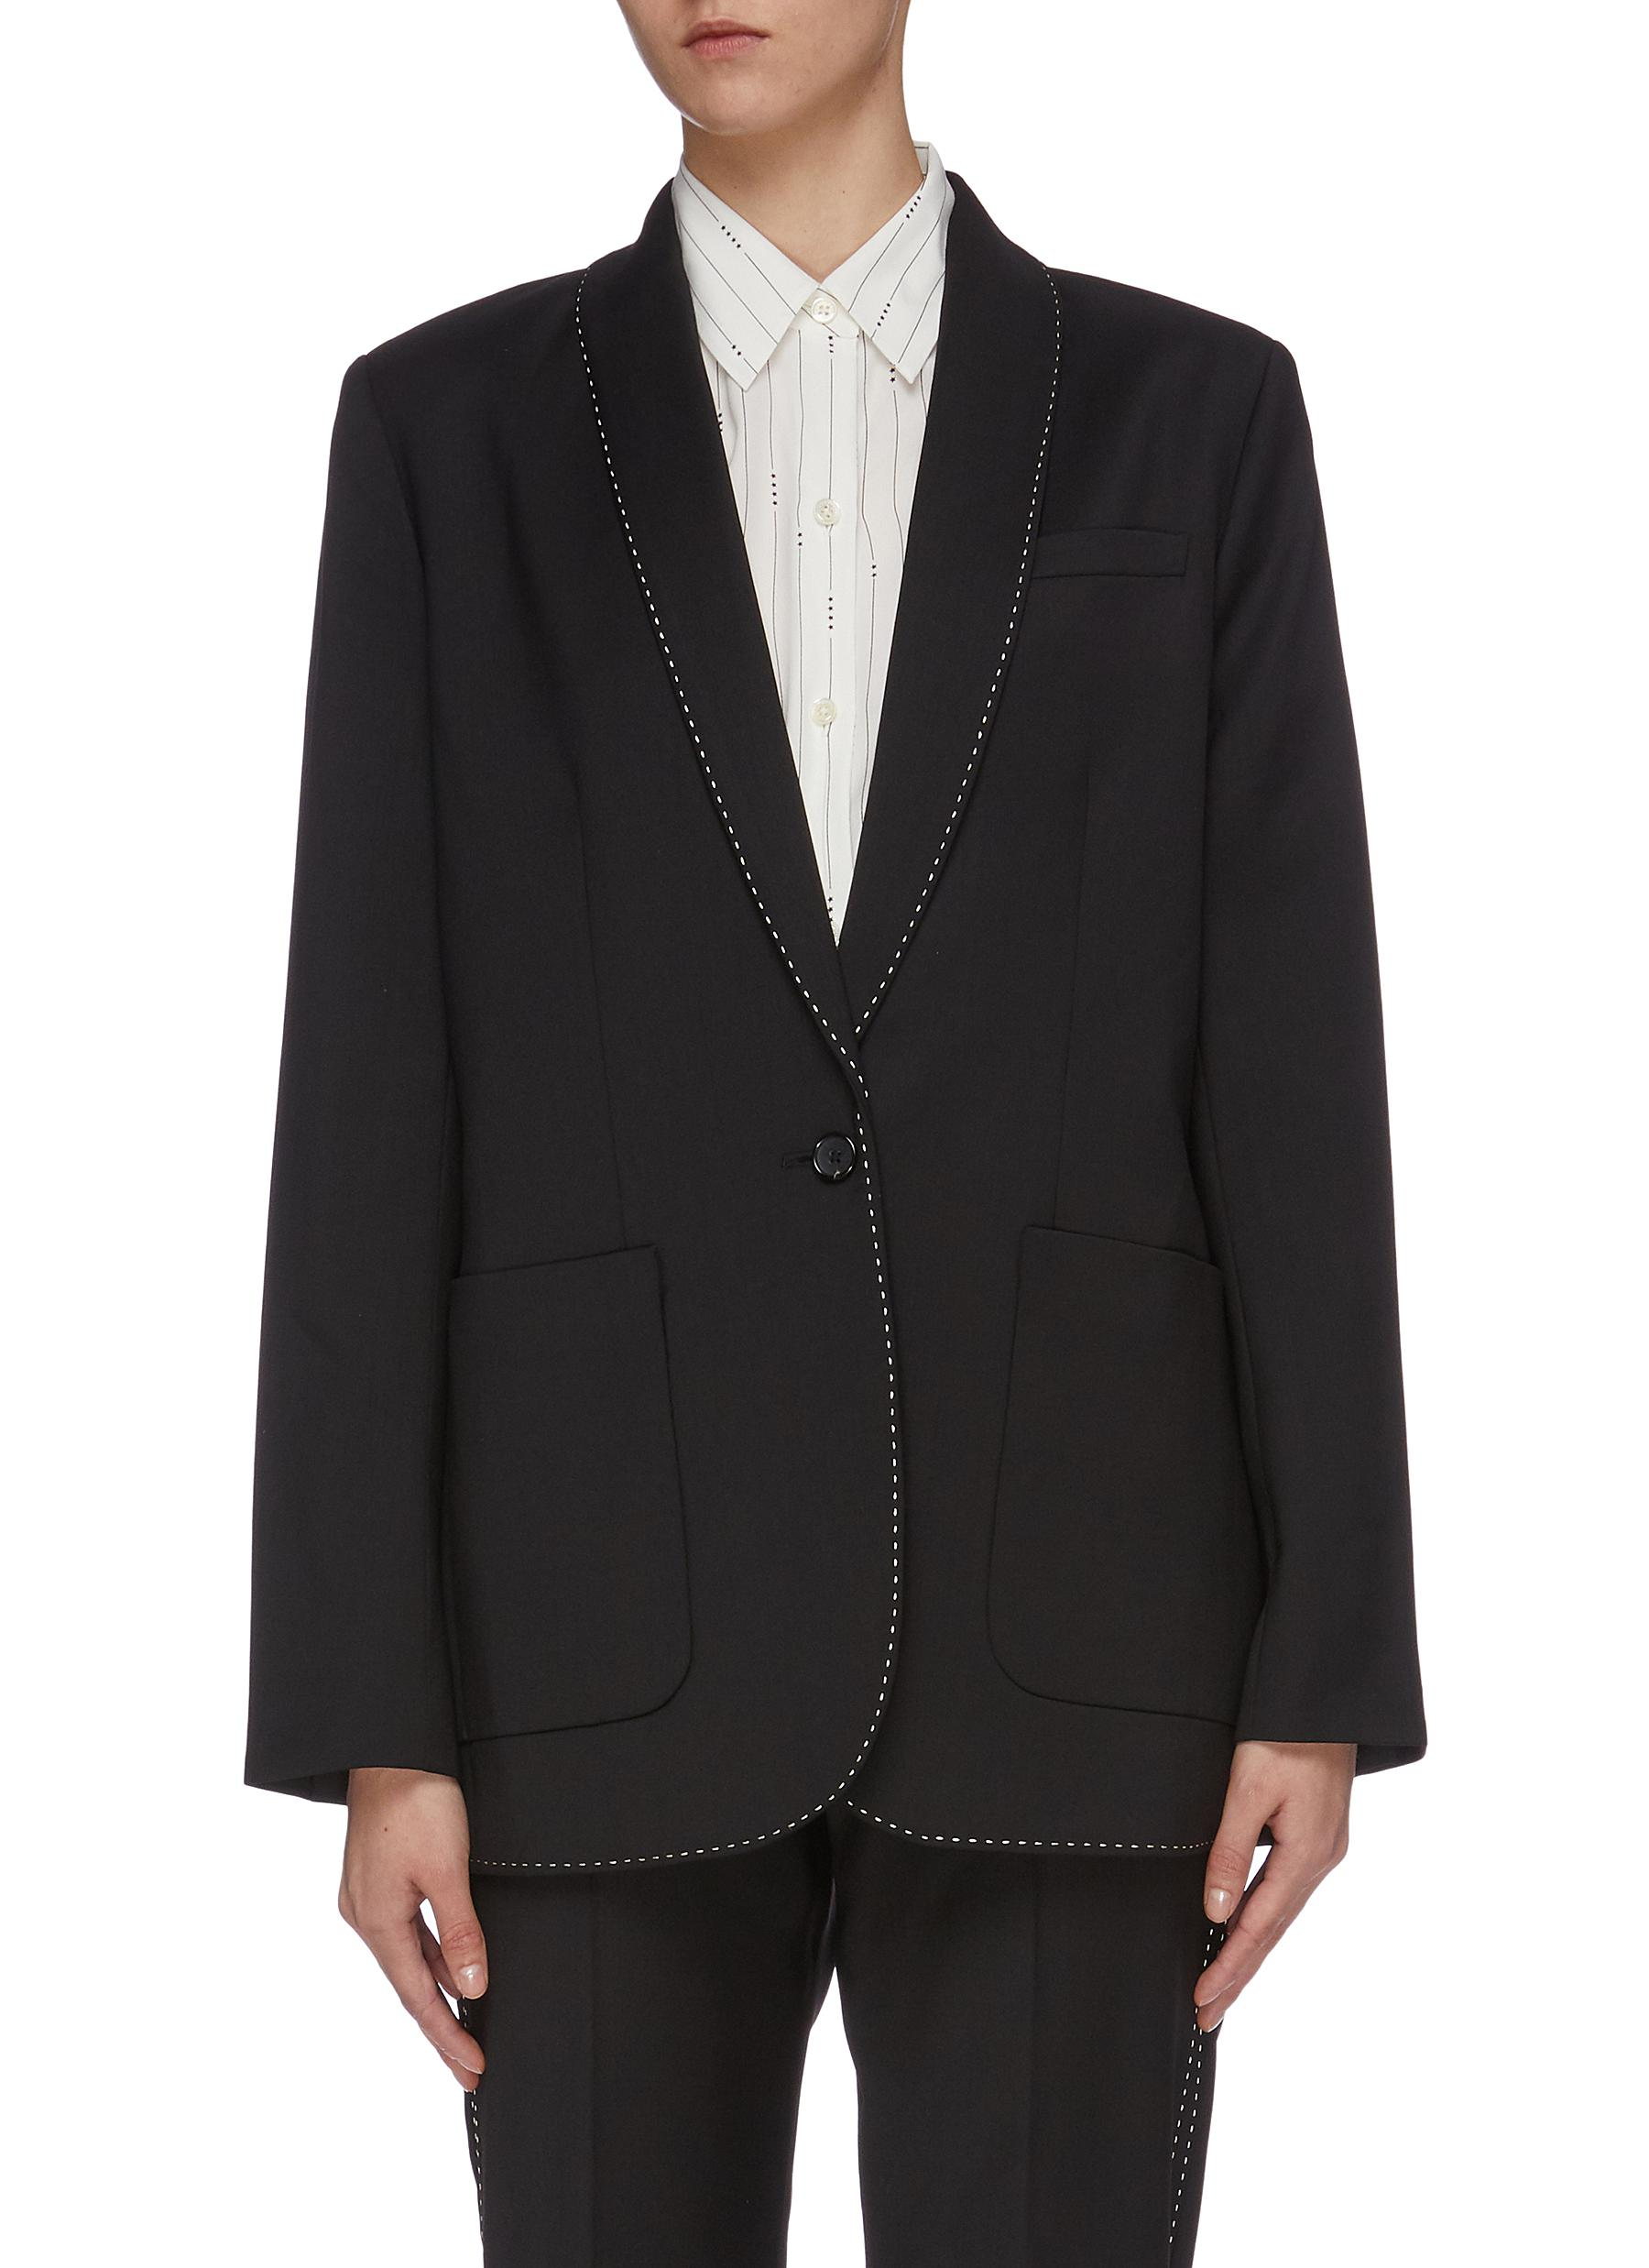 Matthieu contrast topstitching shawl lapel wool blazer by Equipment